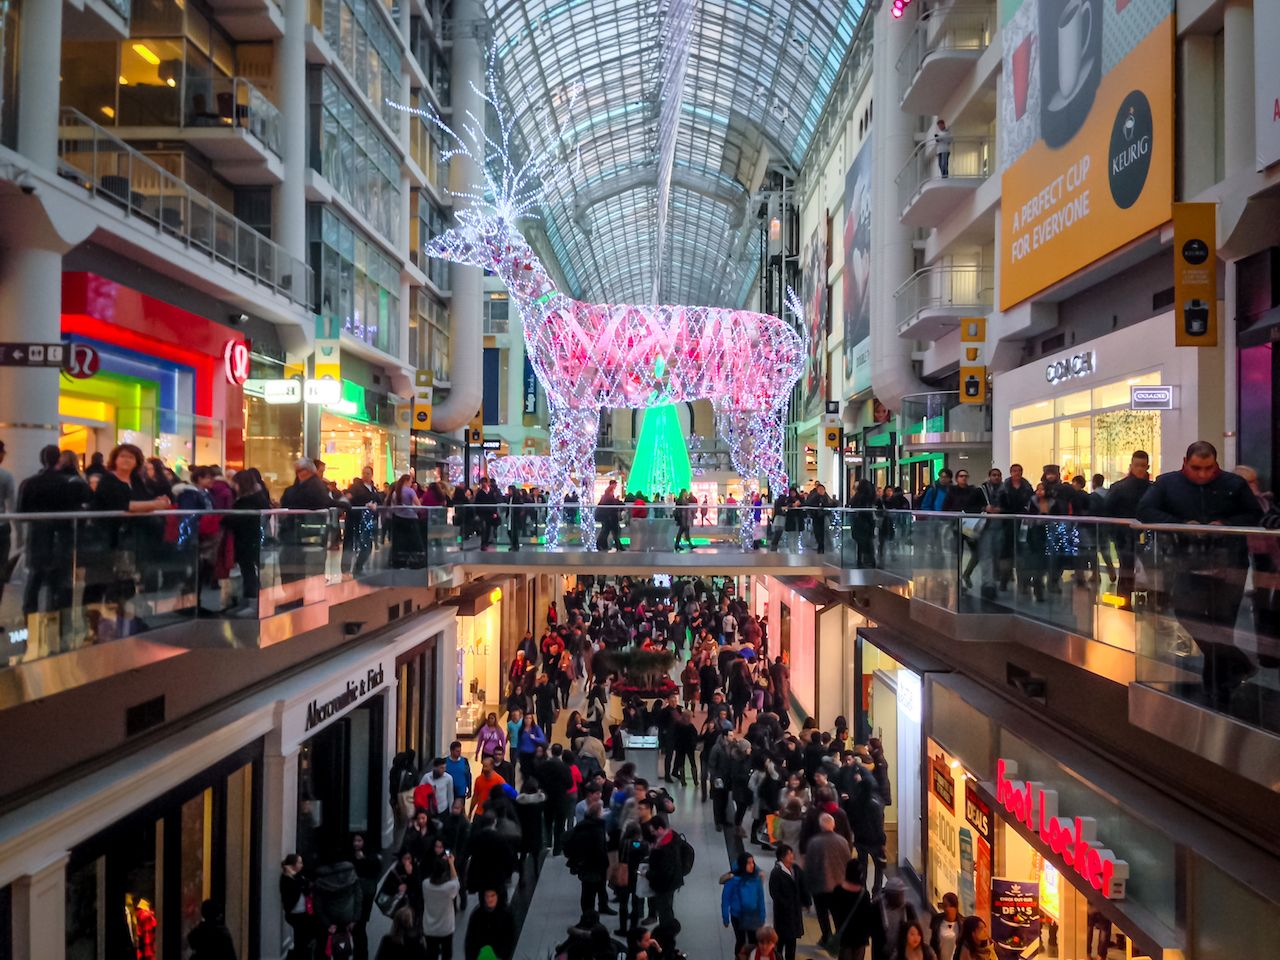 Shoppers visit the mall in Toronto, Canada on the Black Friday